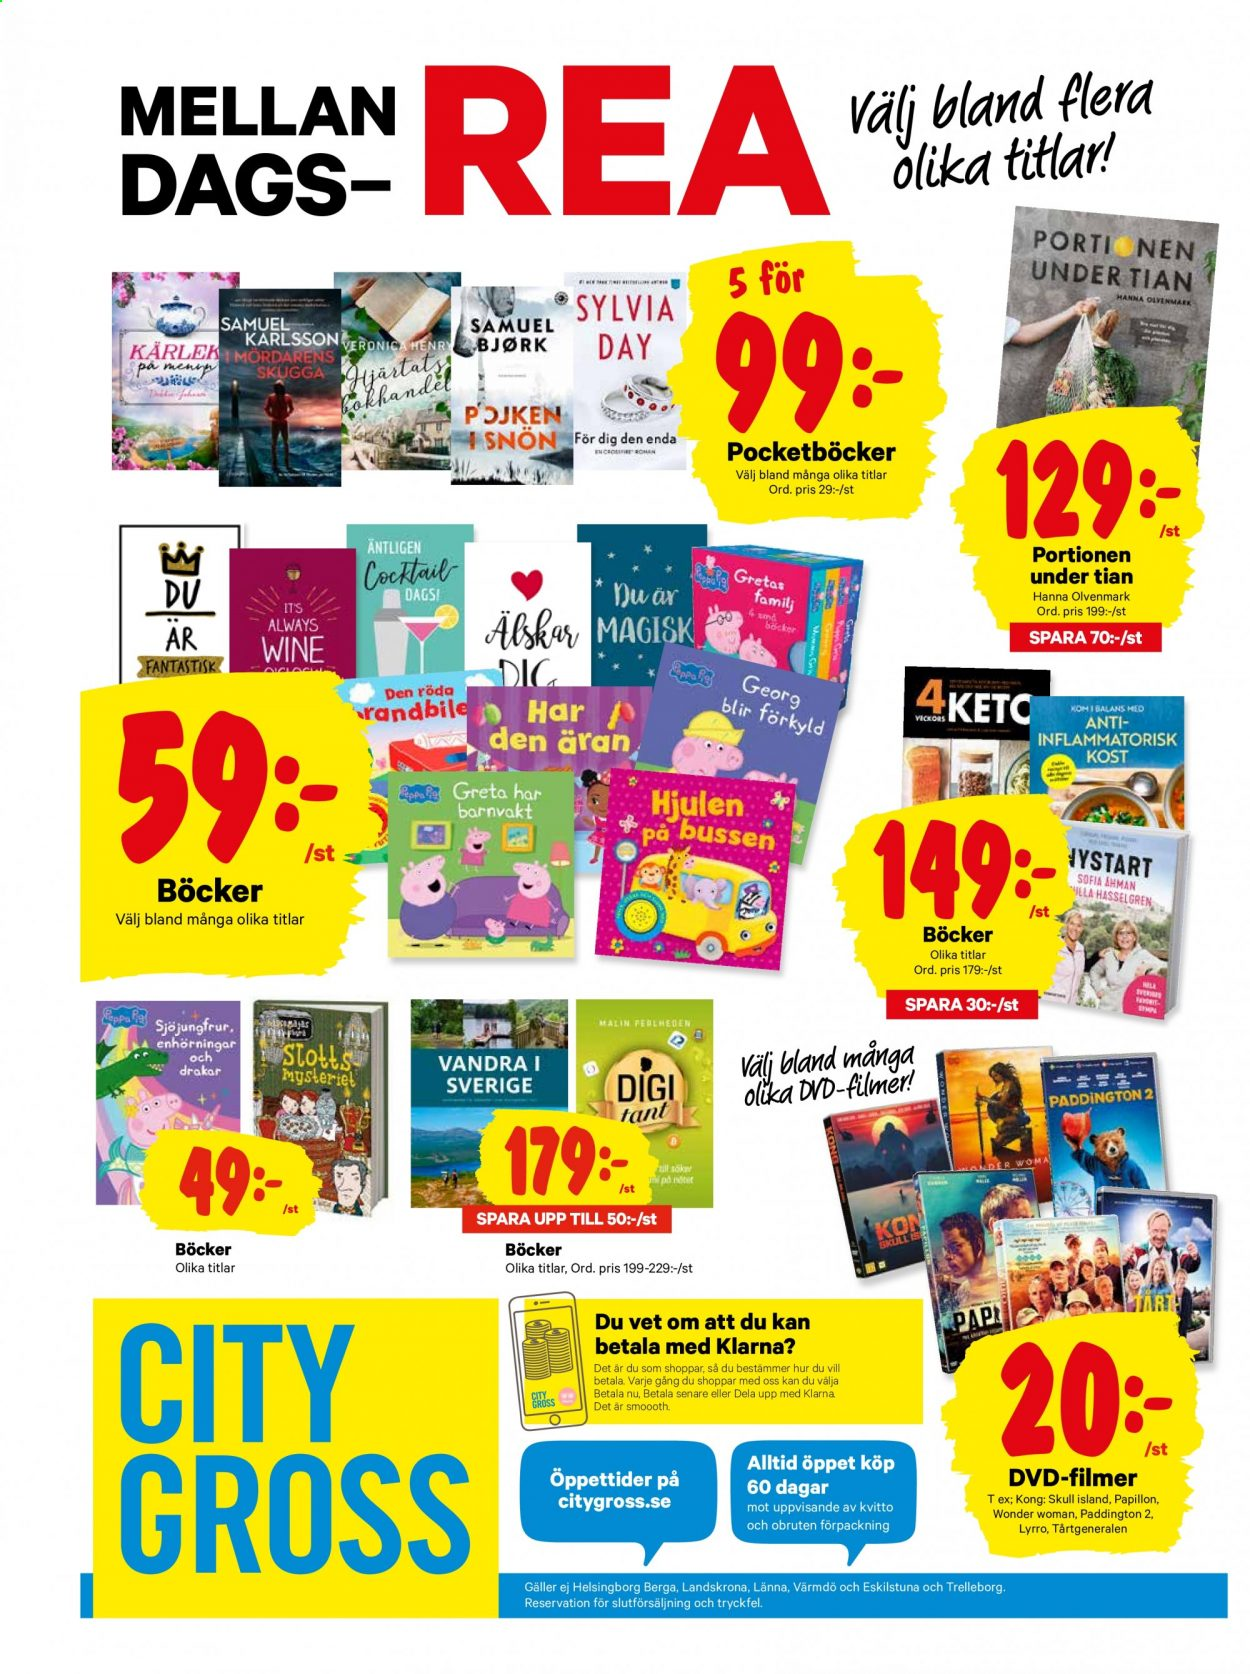 City Gross reklamblad - 29/12 2020 - 3/1 2021. Sida 20.